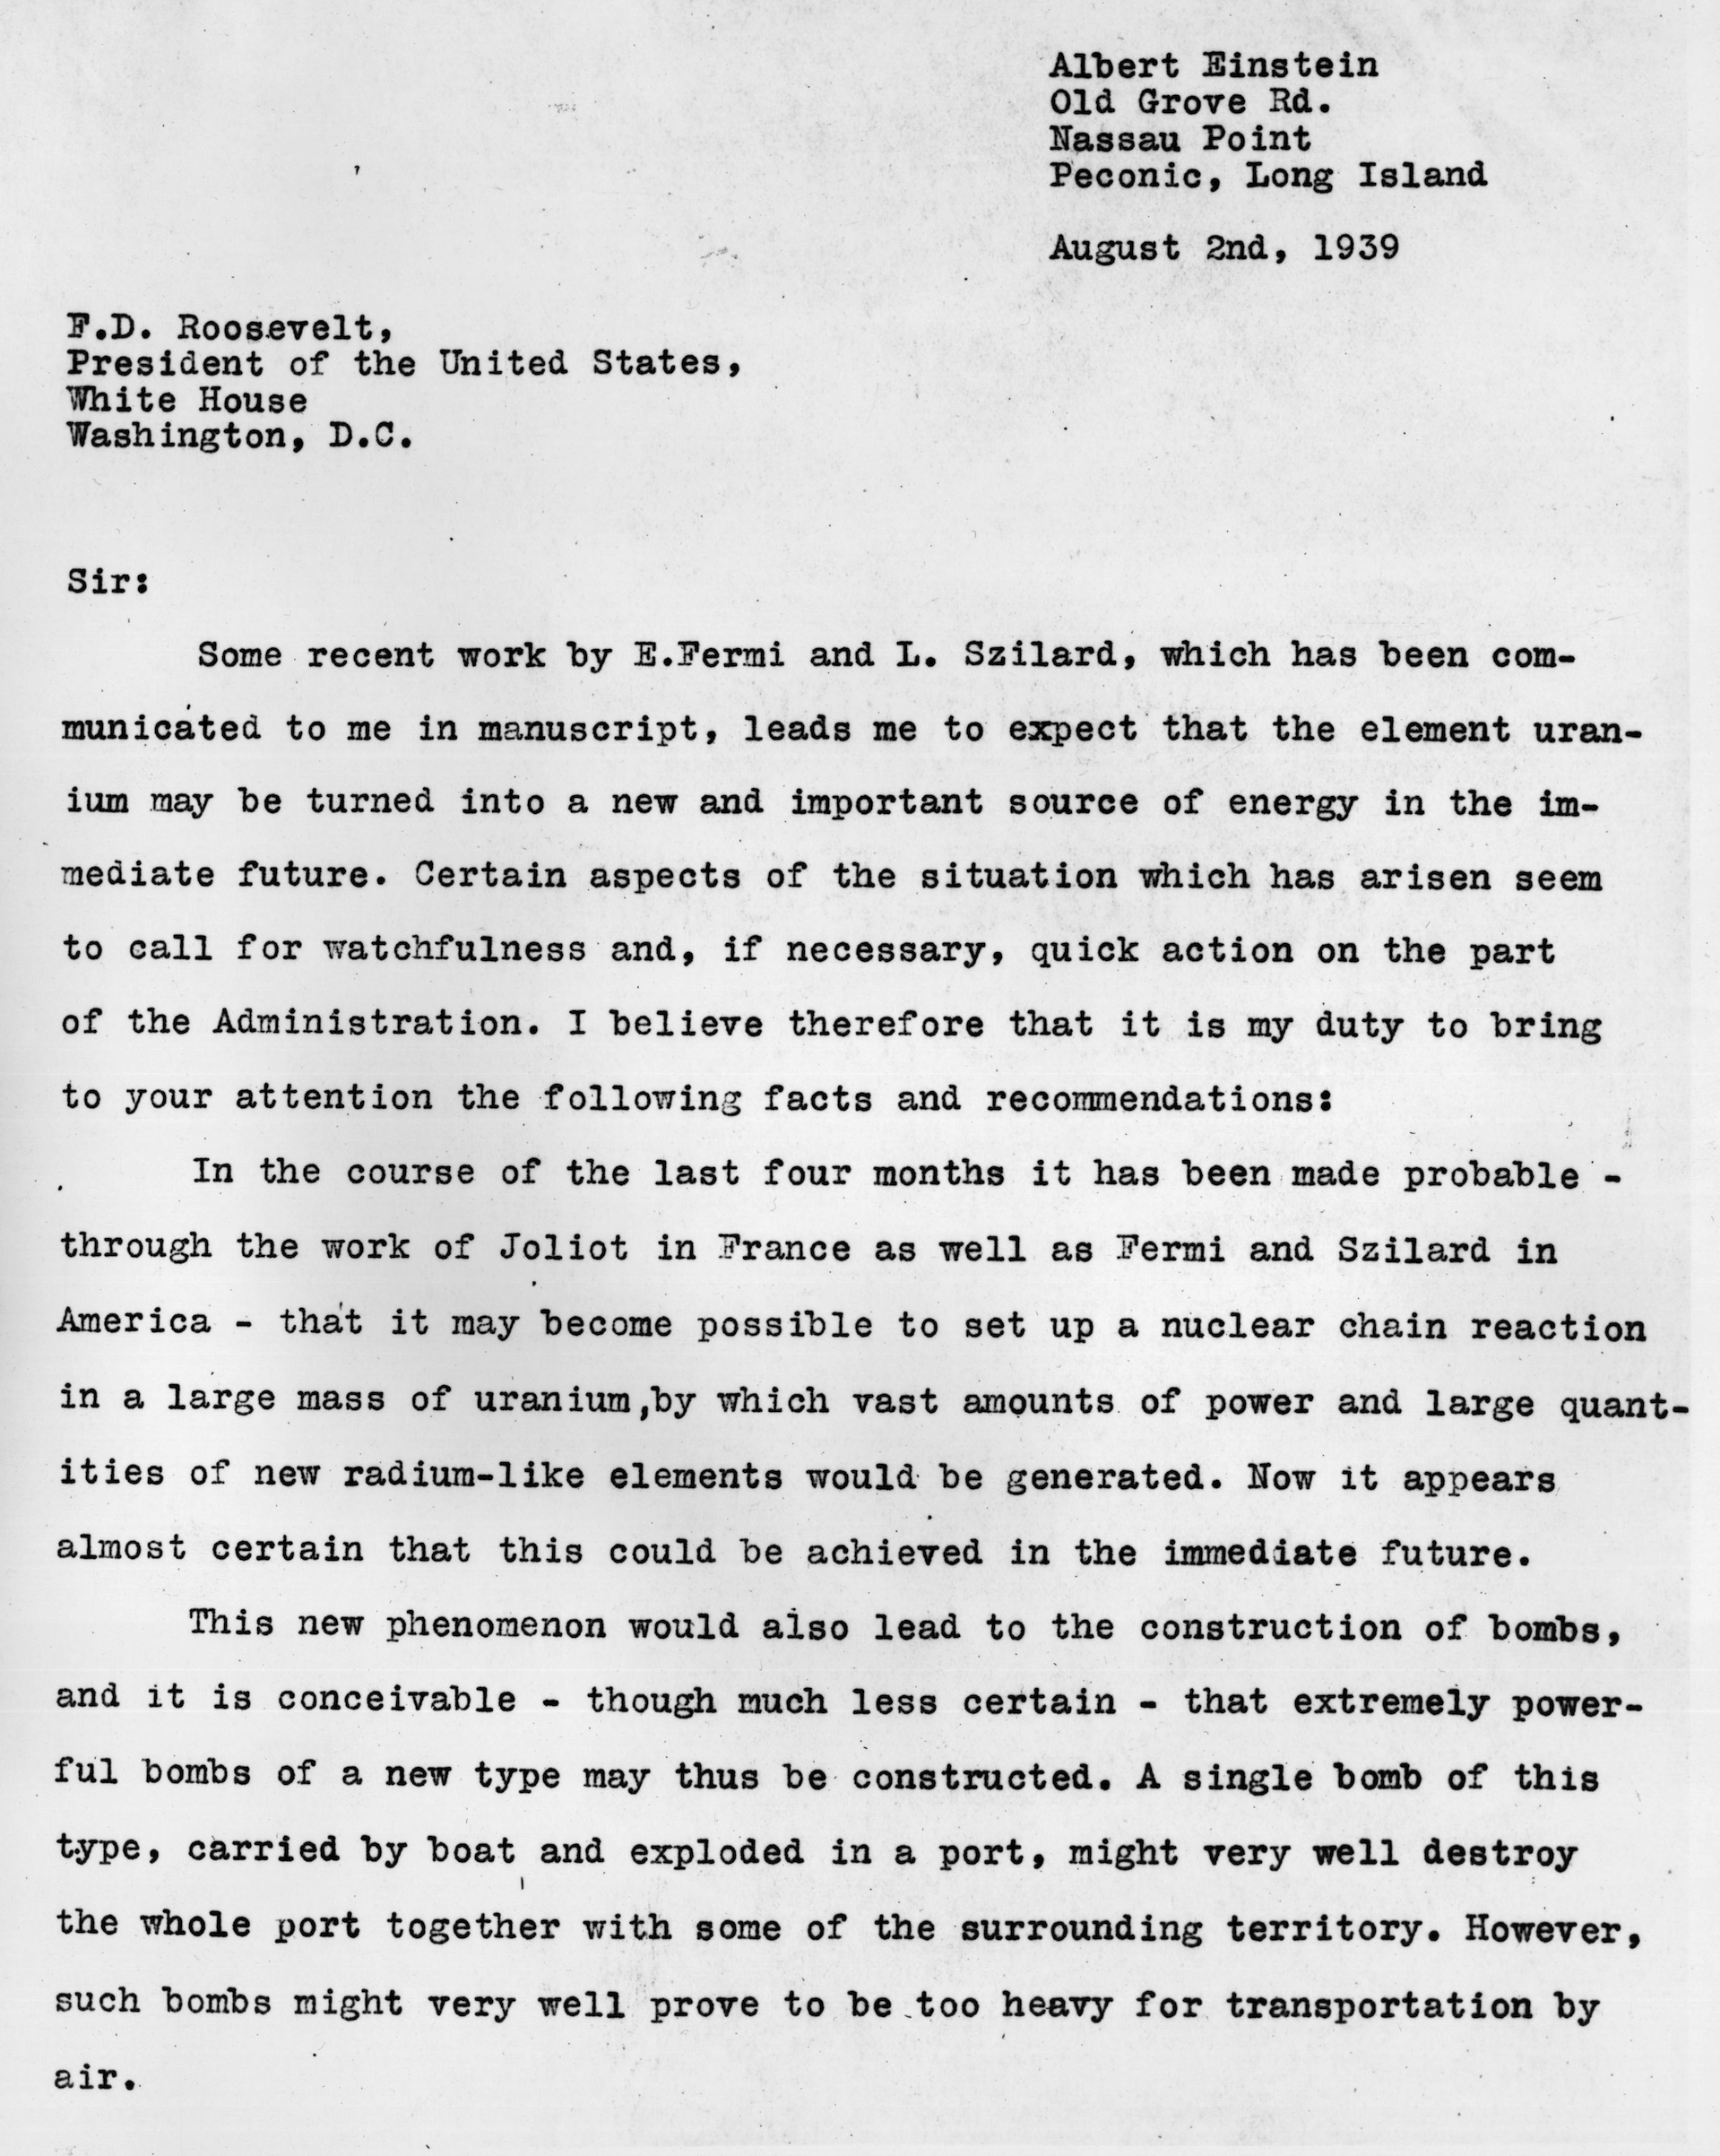 Aug. 2, 1939: The first page of a letter from the physicist Albert Einstein to President Franklin Delano Roosevelt raising the possibility that Germany could build an atomic bomb.